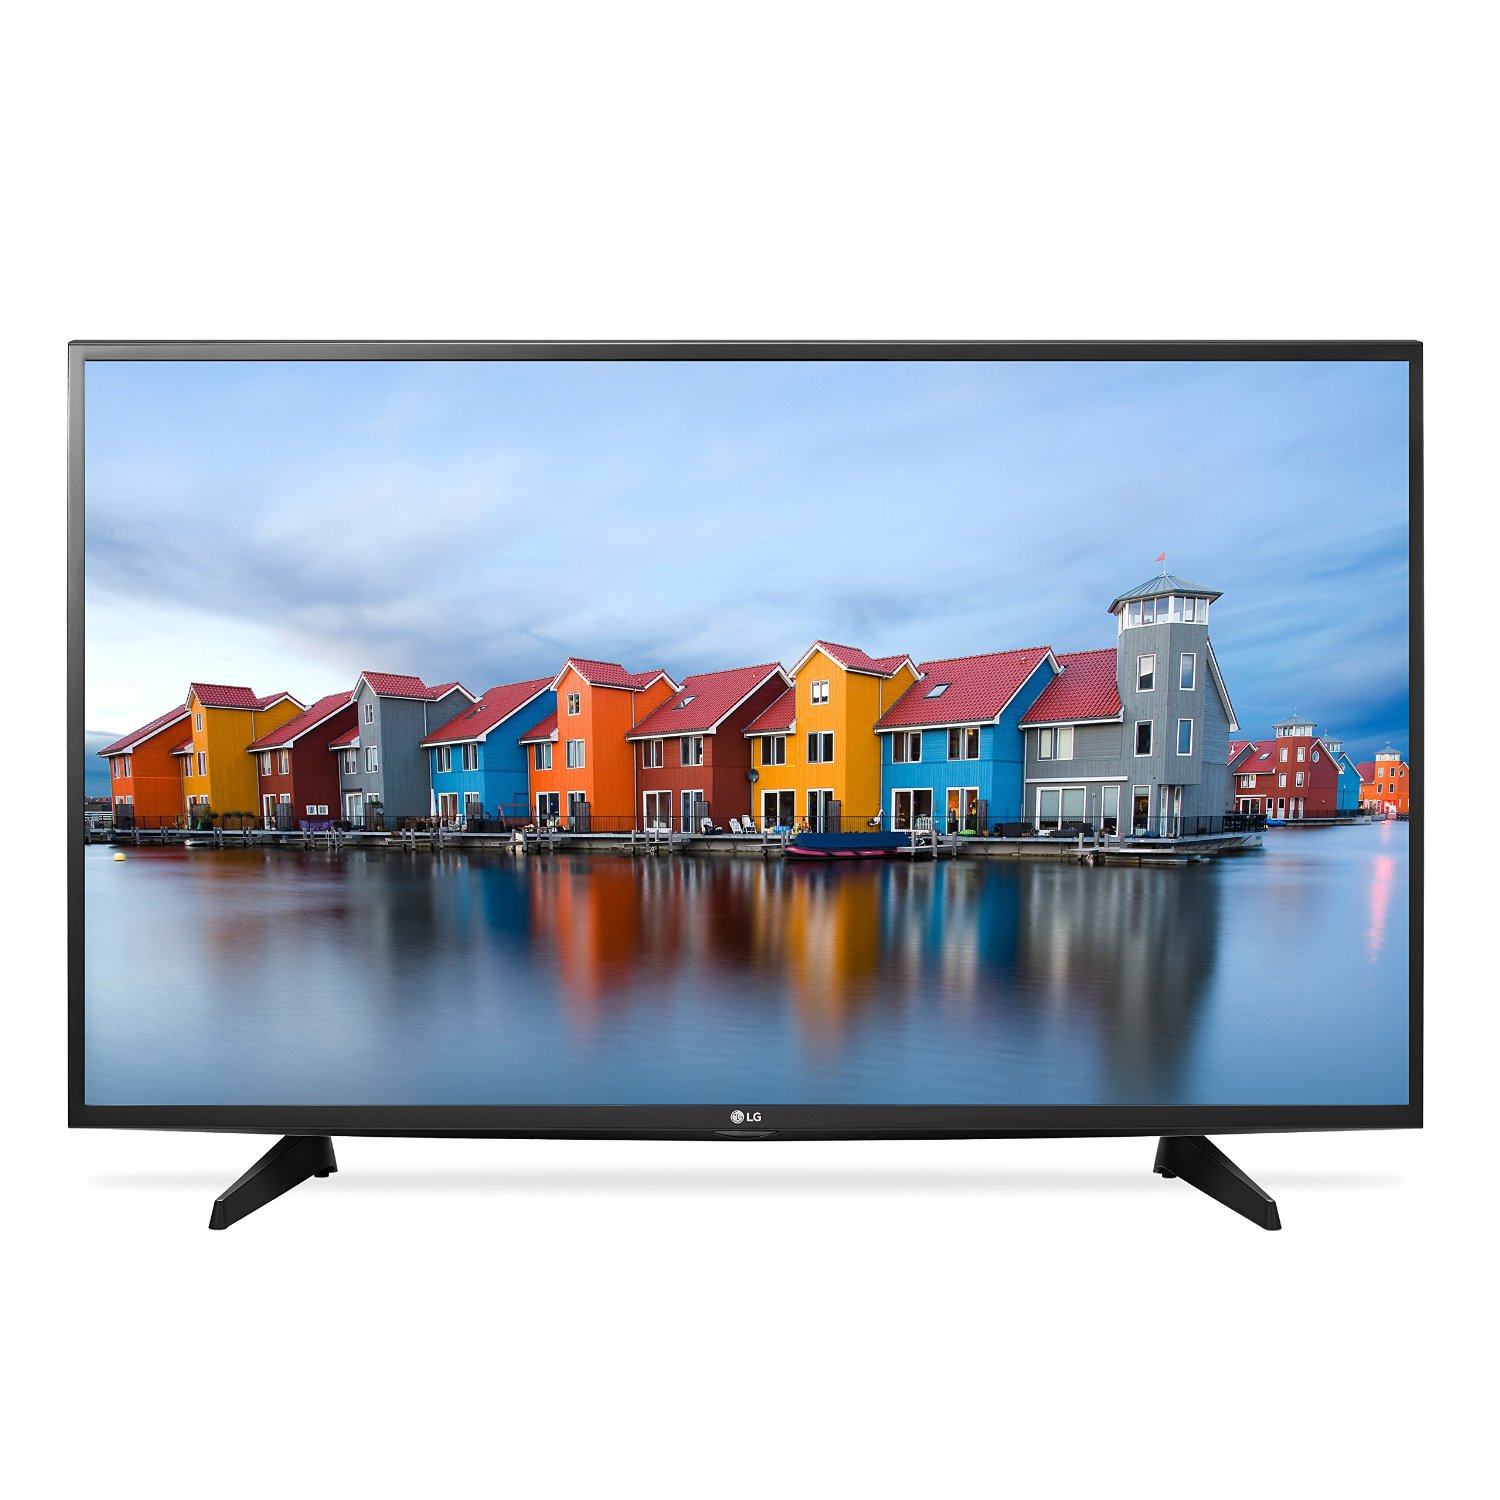 43 Inch Tv Lg Electronics 43lh5700 43 Inch Smart Led Tv Reviews And Deals